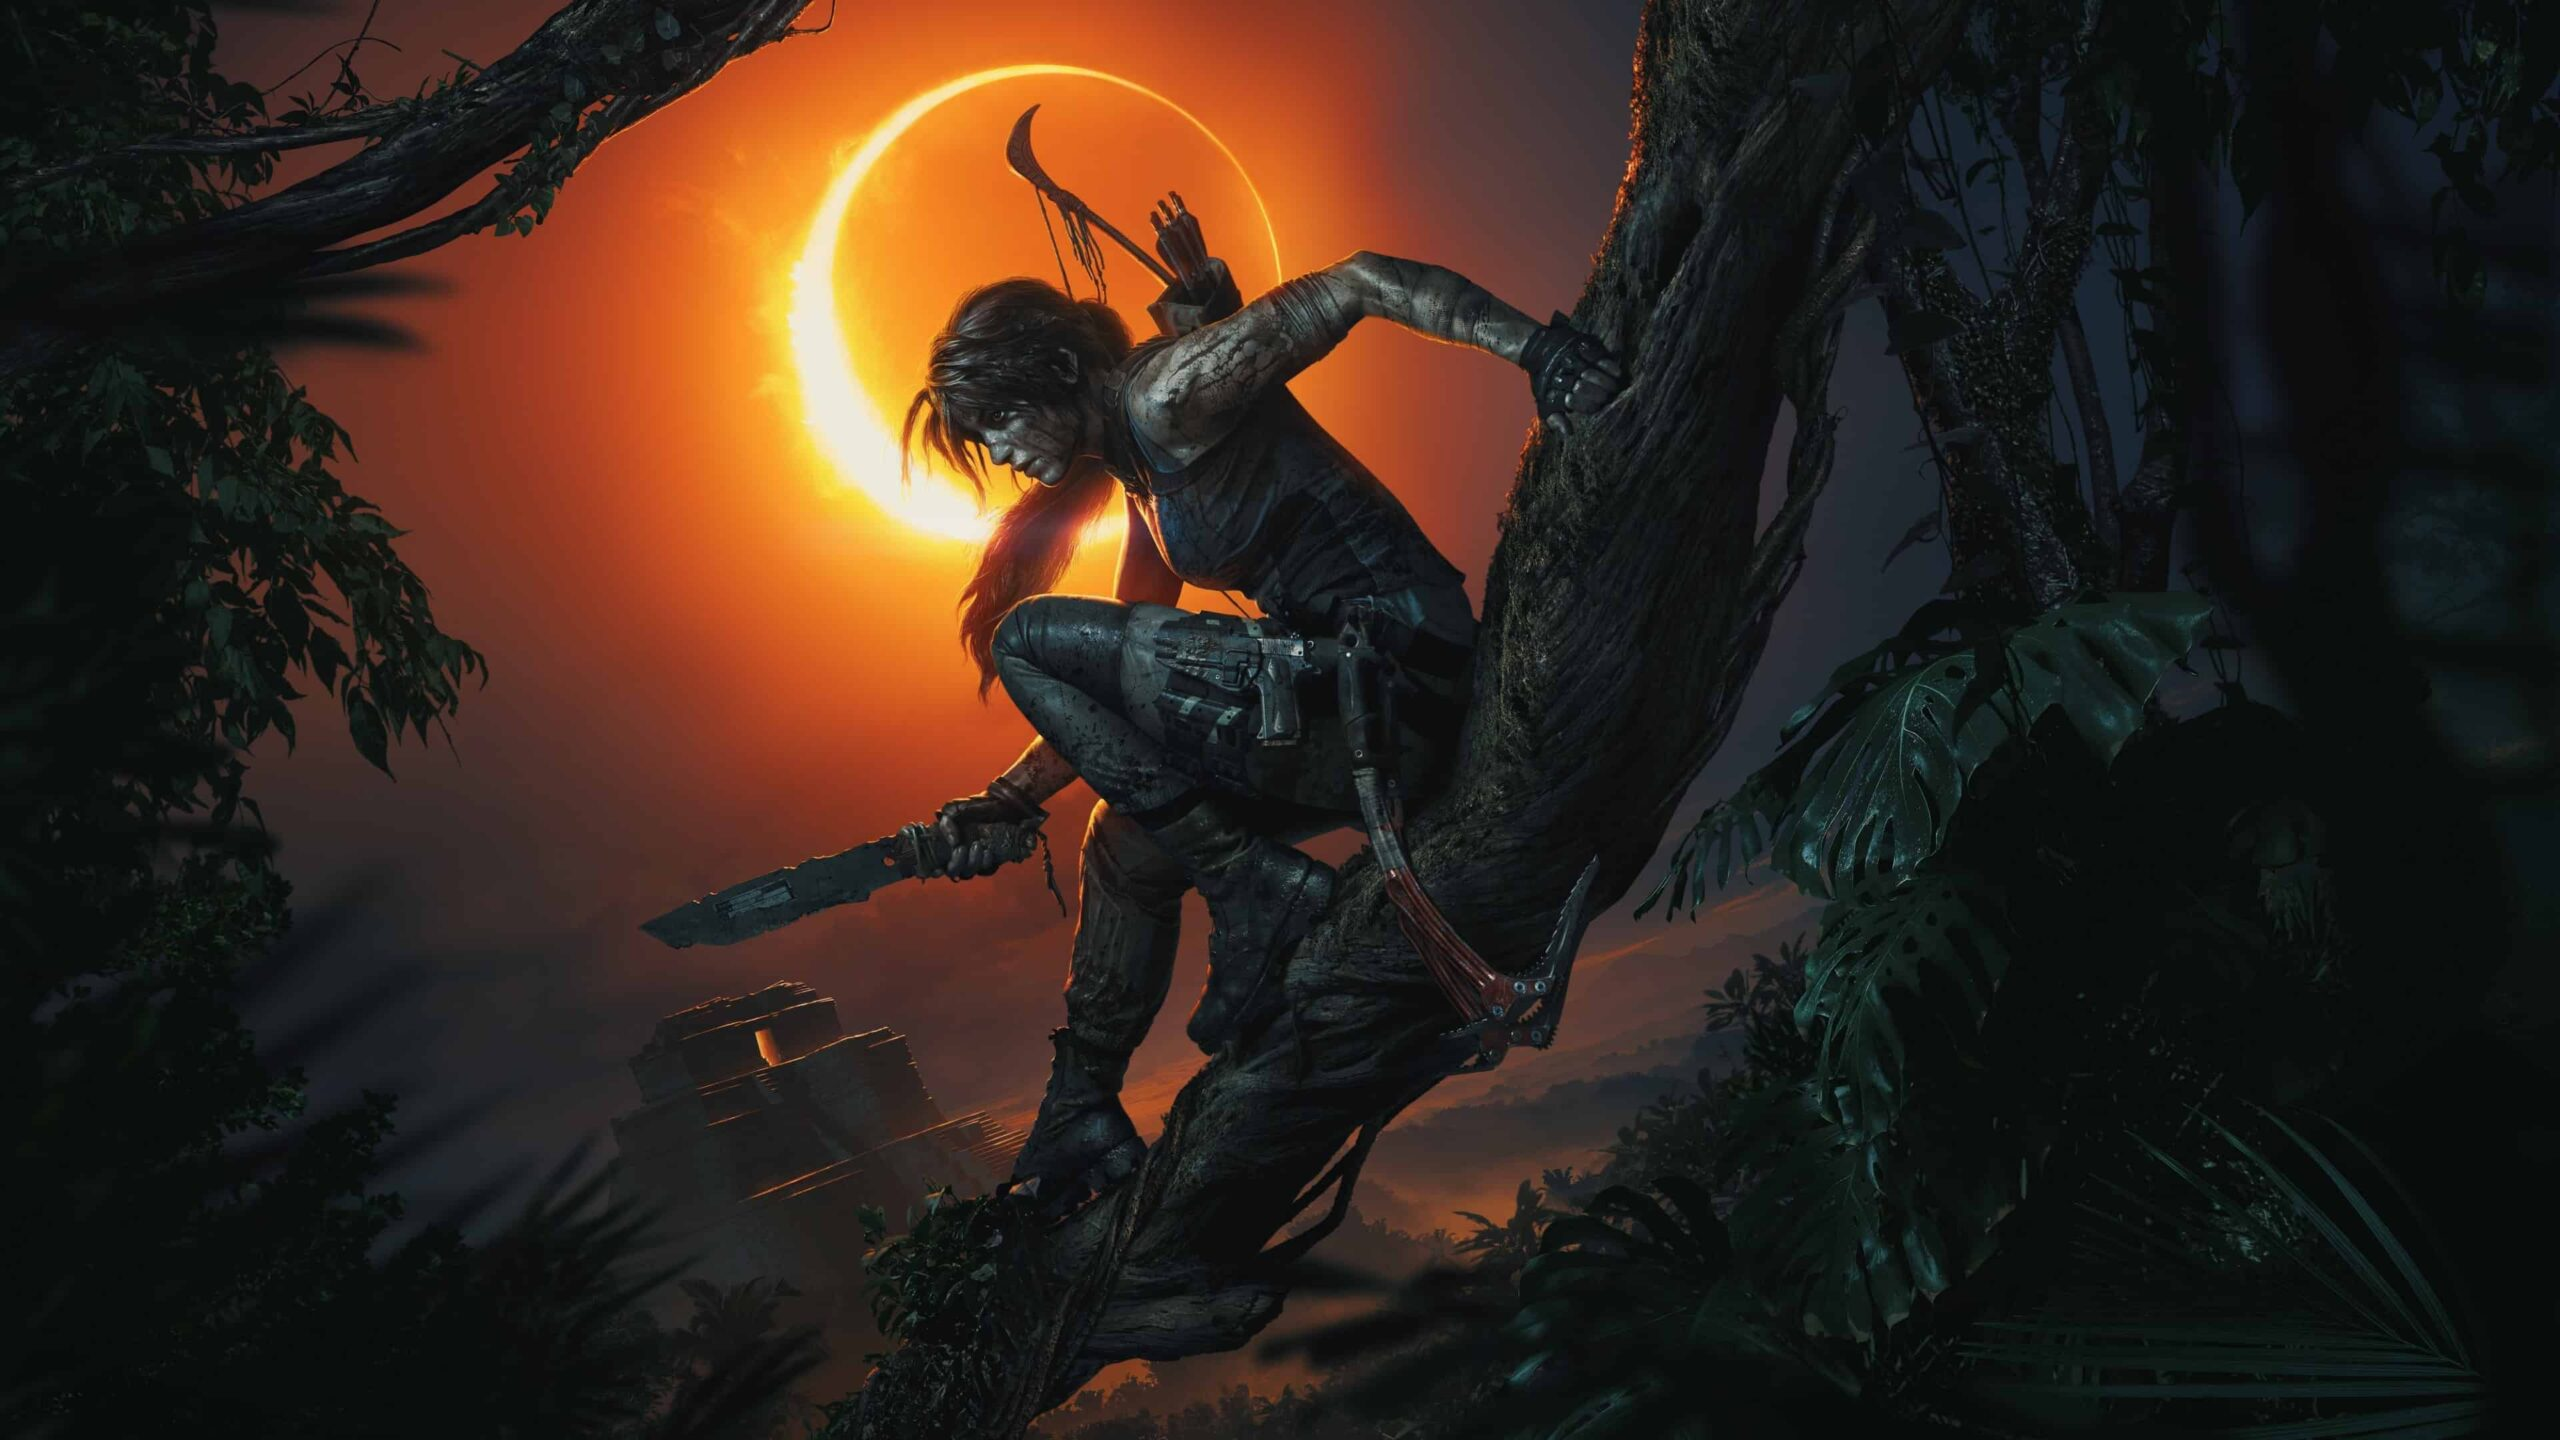 Shadow of the Tomb Raider Wallpaper HD